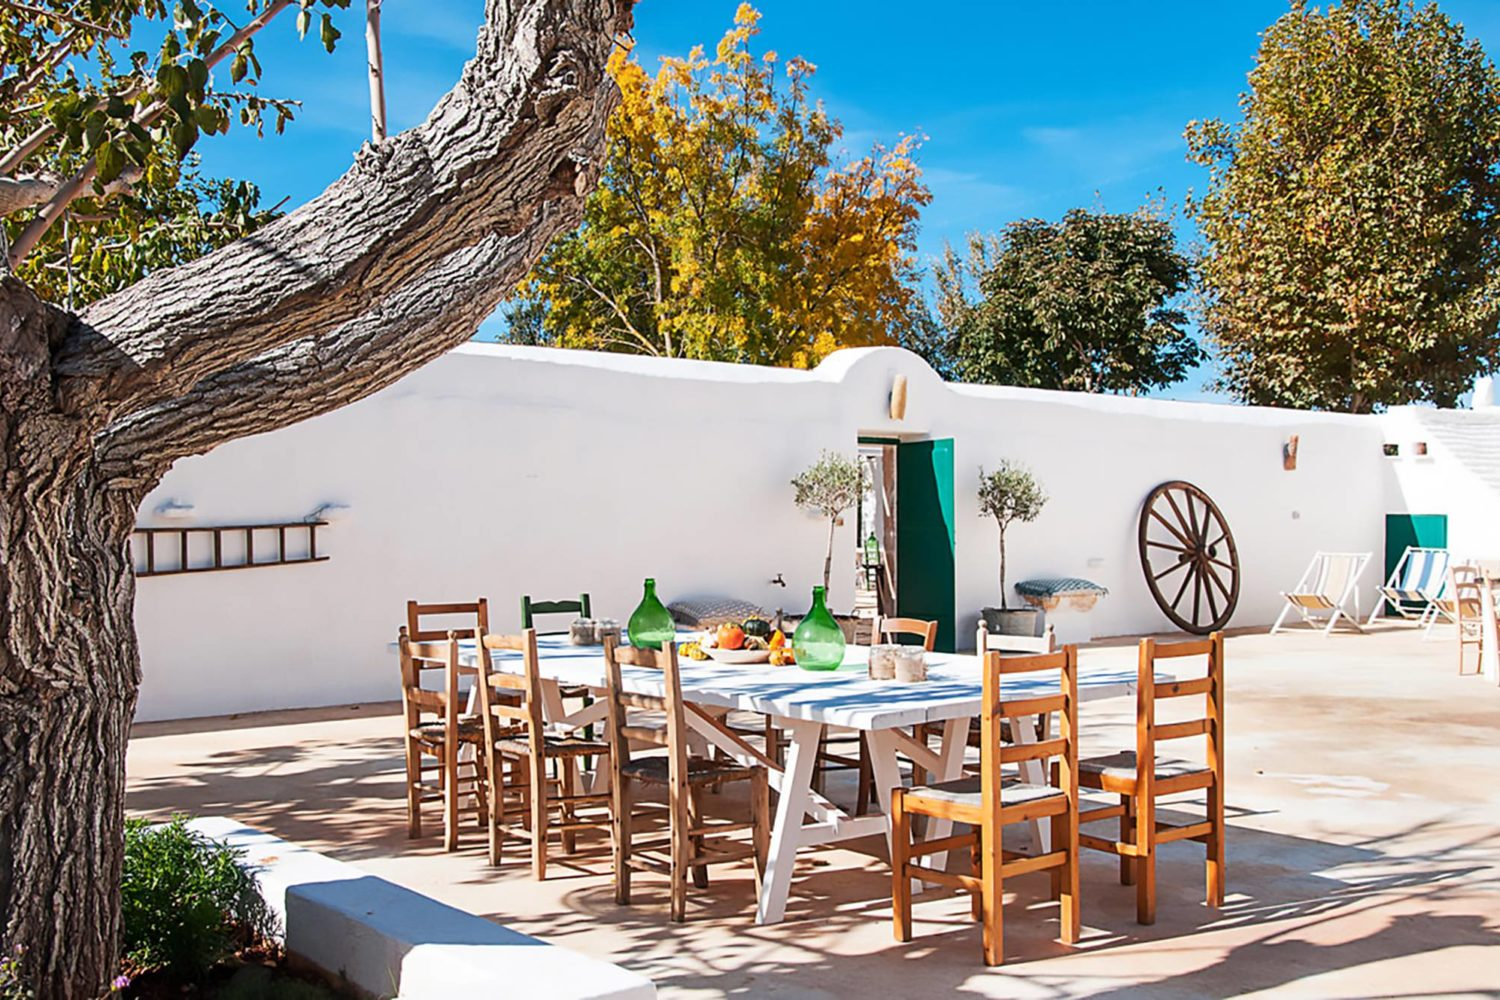 Authentic place for staying in Puglia